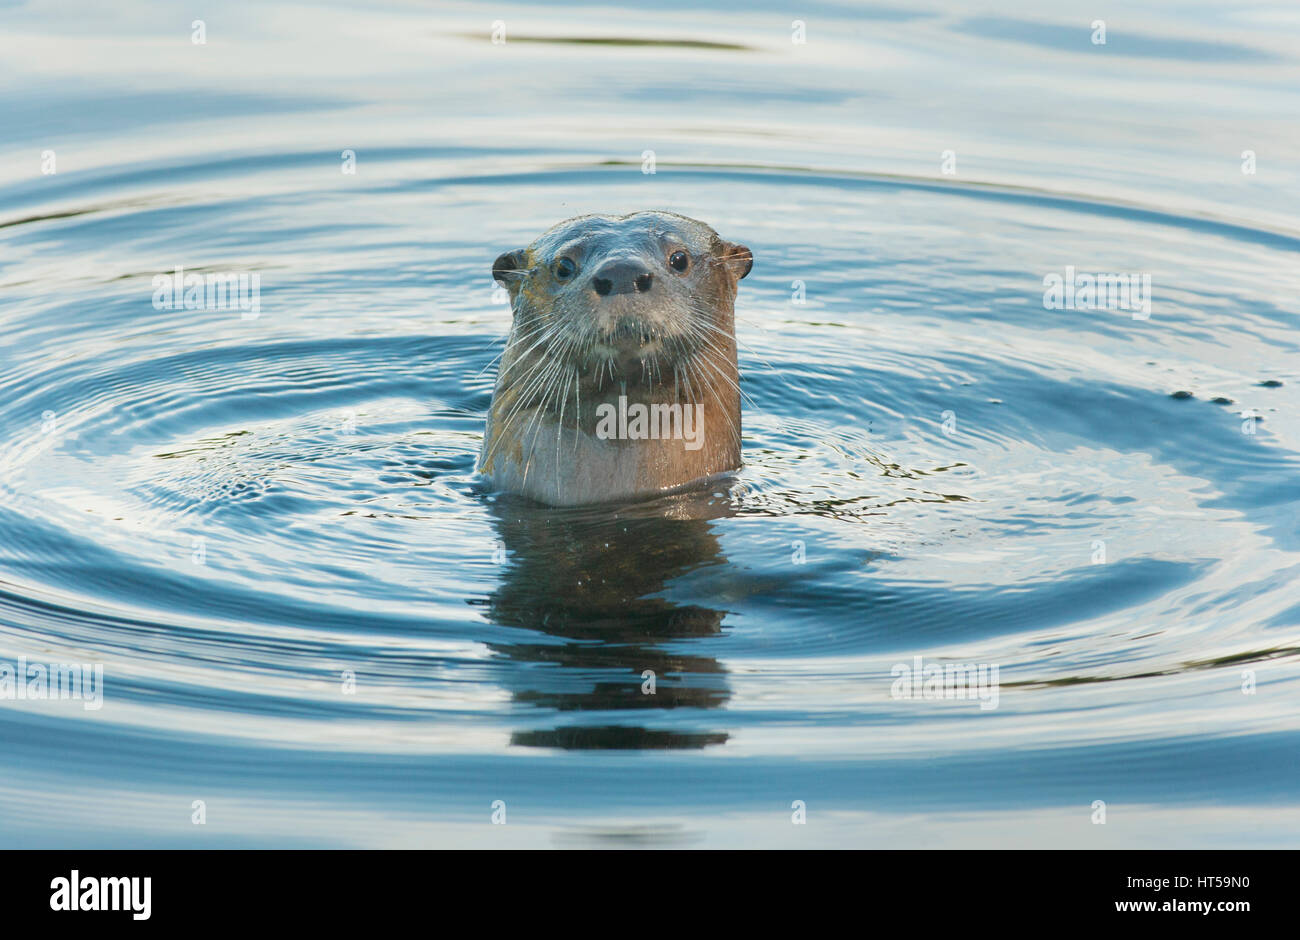 Southern River Otter (Lontra provocax) Critically Endangered, Chiloe Island, Chile - Stock Image